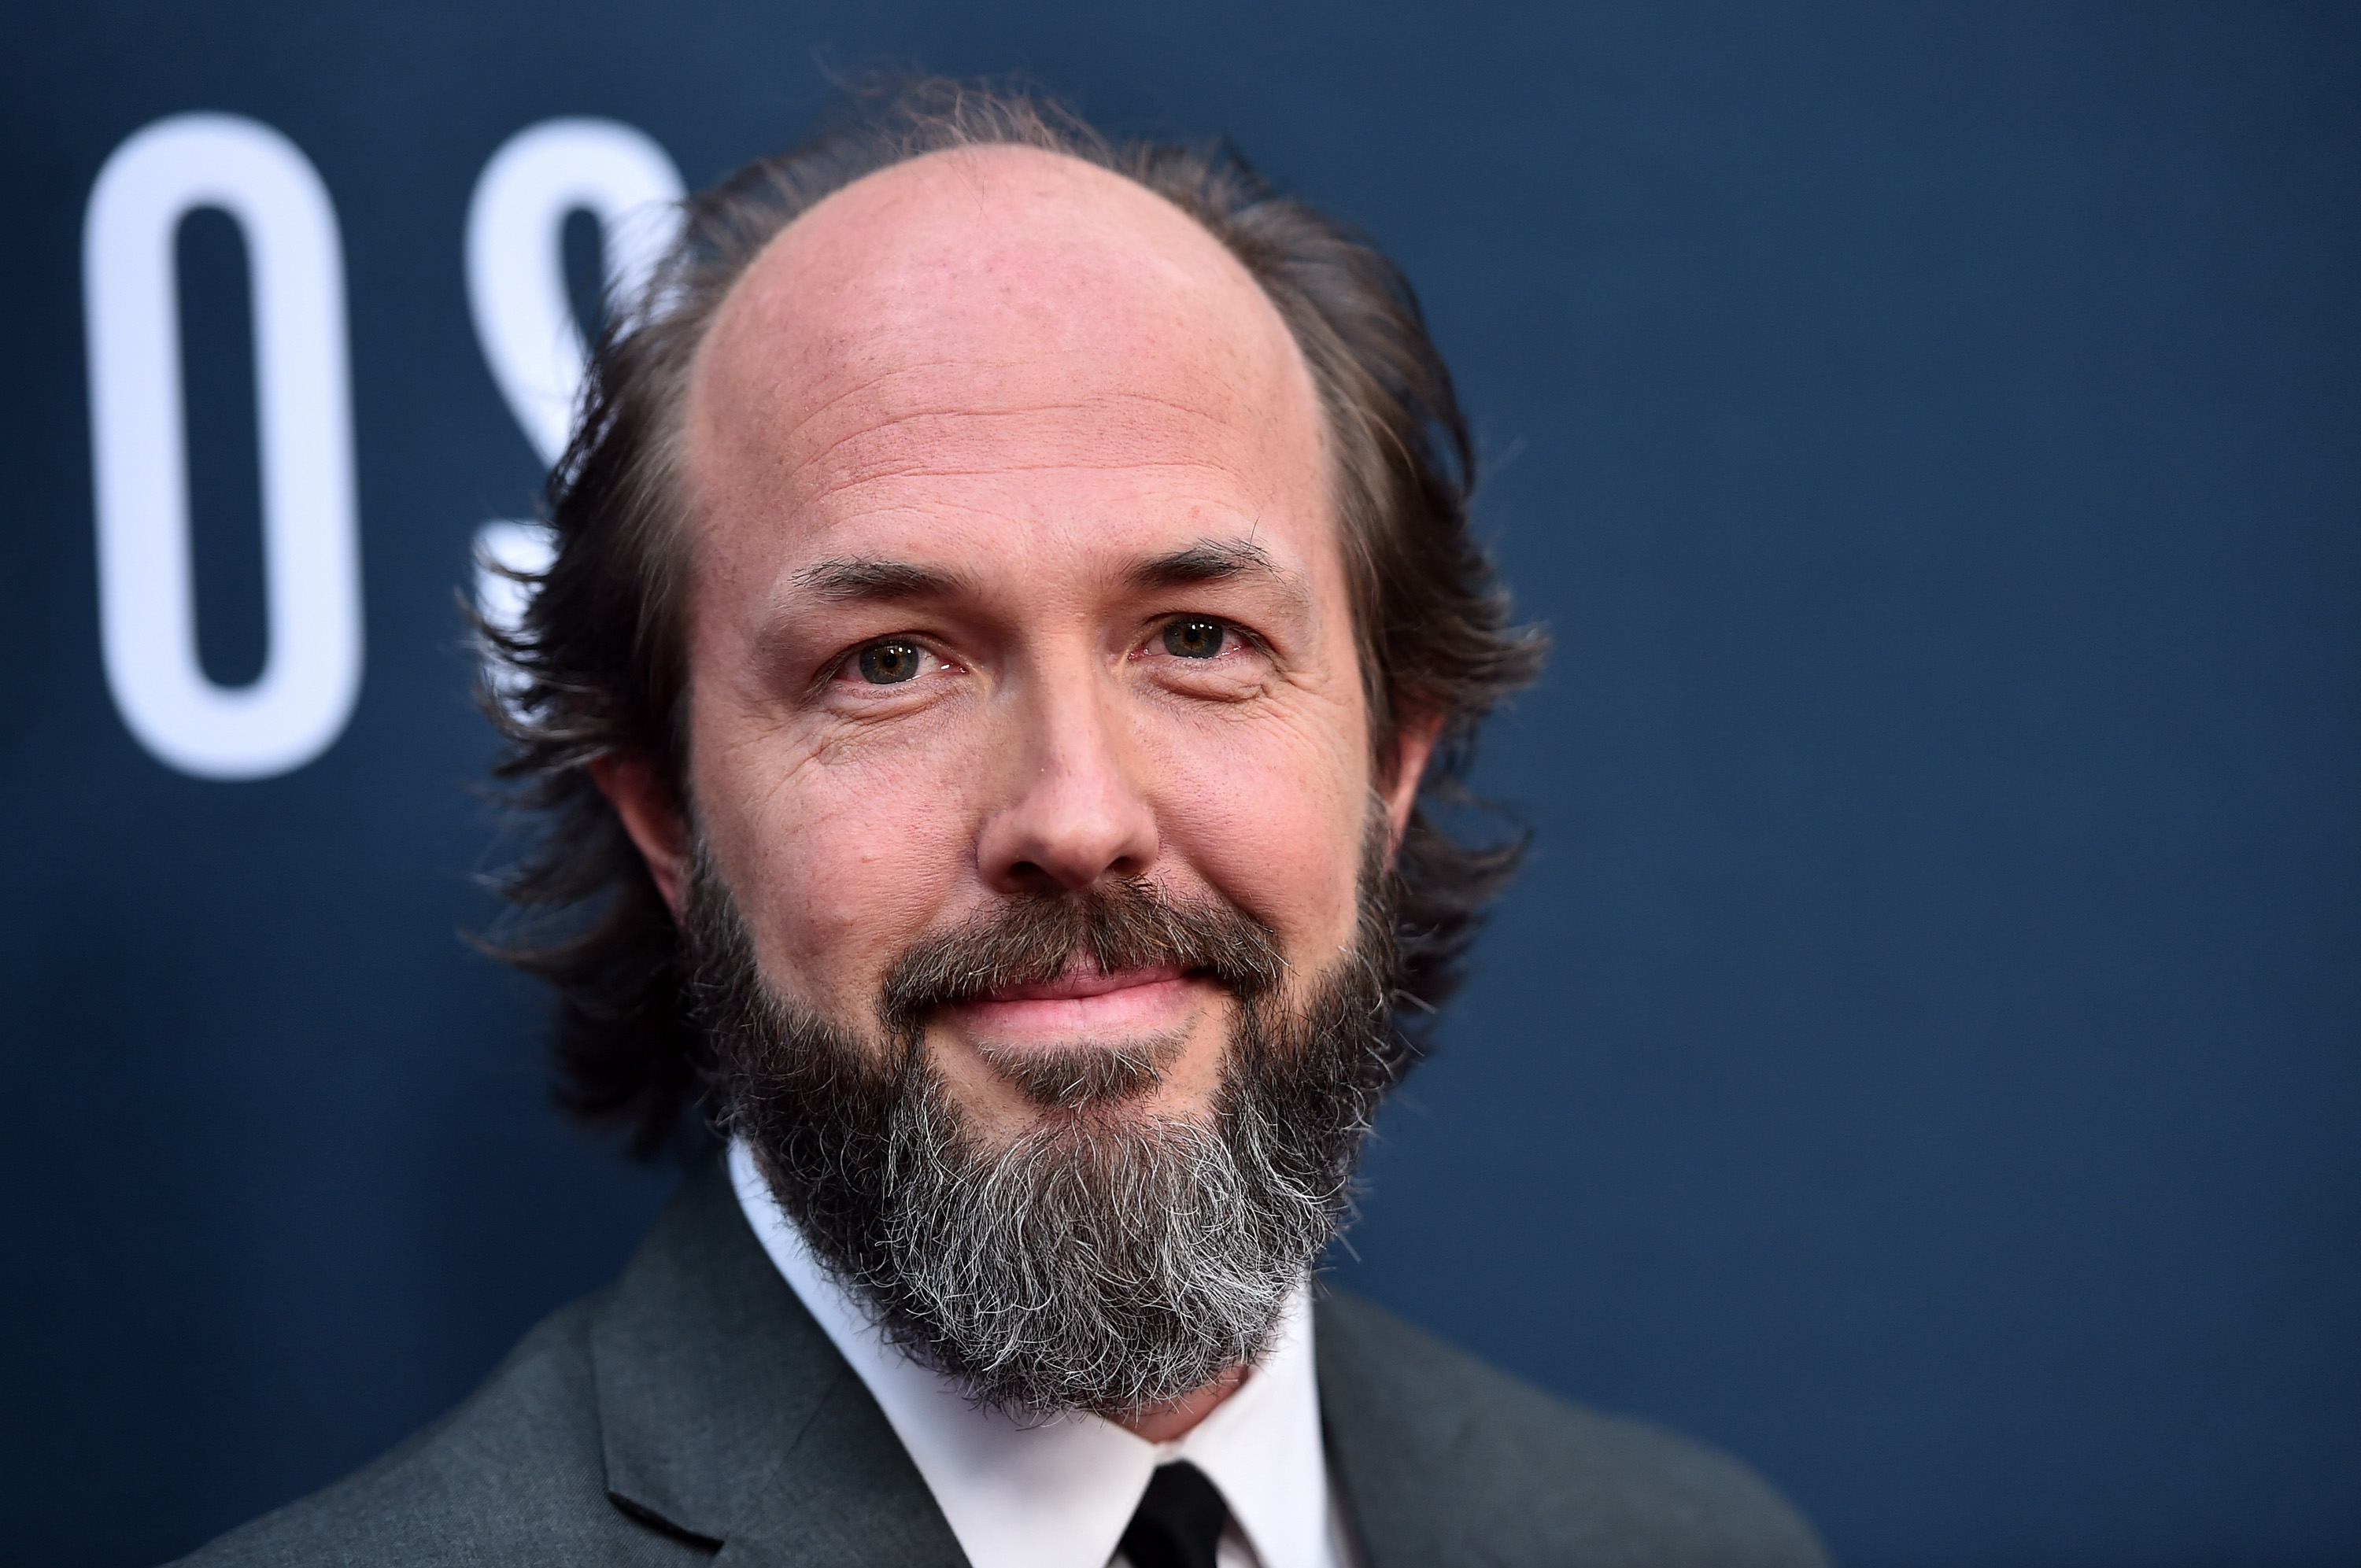 Actor Eric Lange attends the Season 2 premiere of Netflix's 'Narcos' at ArcLight Cinemas on August 24, 2016, in Hollywood, California. (Getty Images)